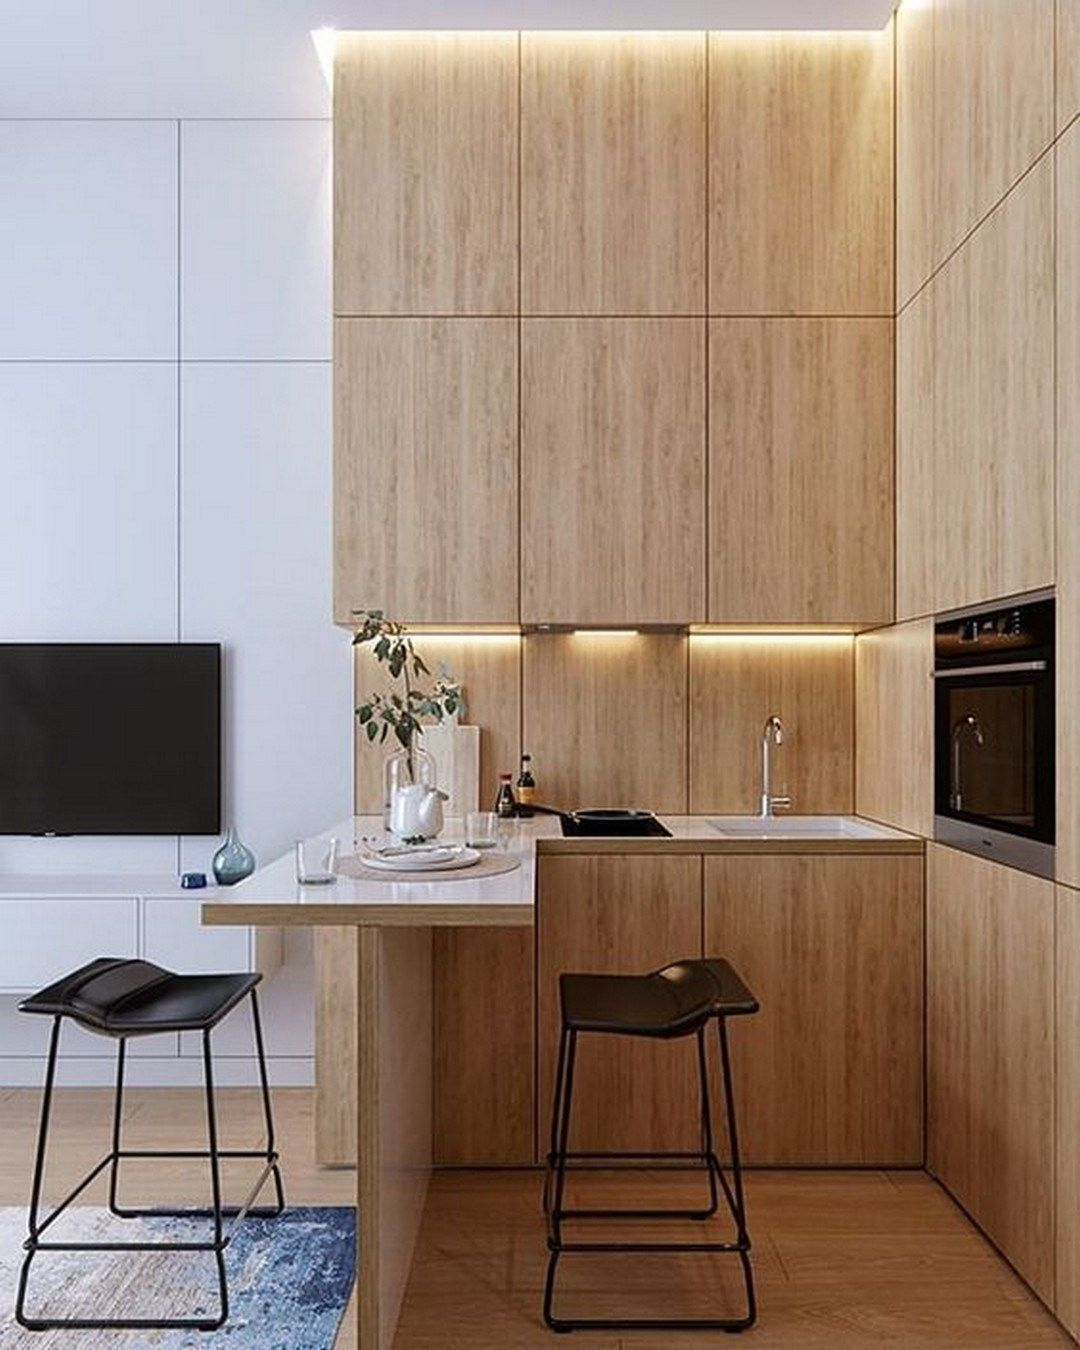 Modern Mini Kitchen Design: 40 Exciting Small Modern Kitchen Design Ideas (22) In 2019